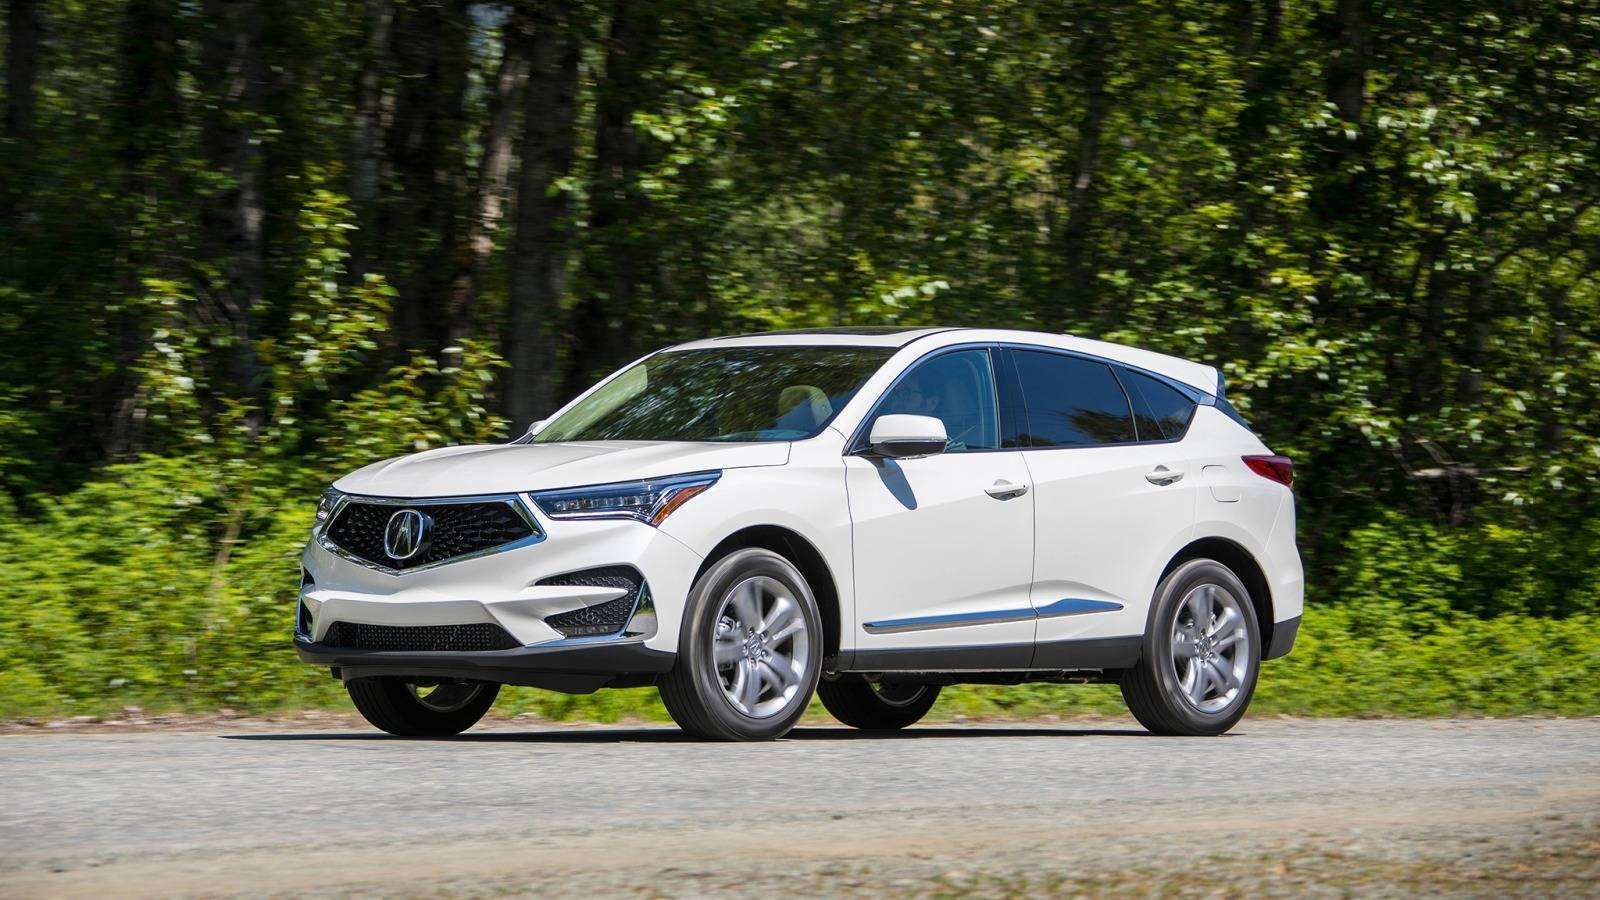 28 All New The Acura Rdx 2019 Lane Keep Assist Review Price with The Acura Rdx 2019 Lane Keep Assist Review